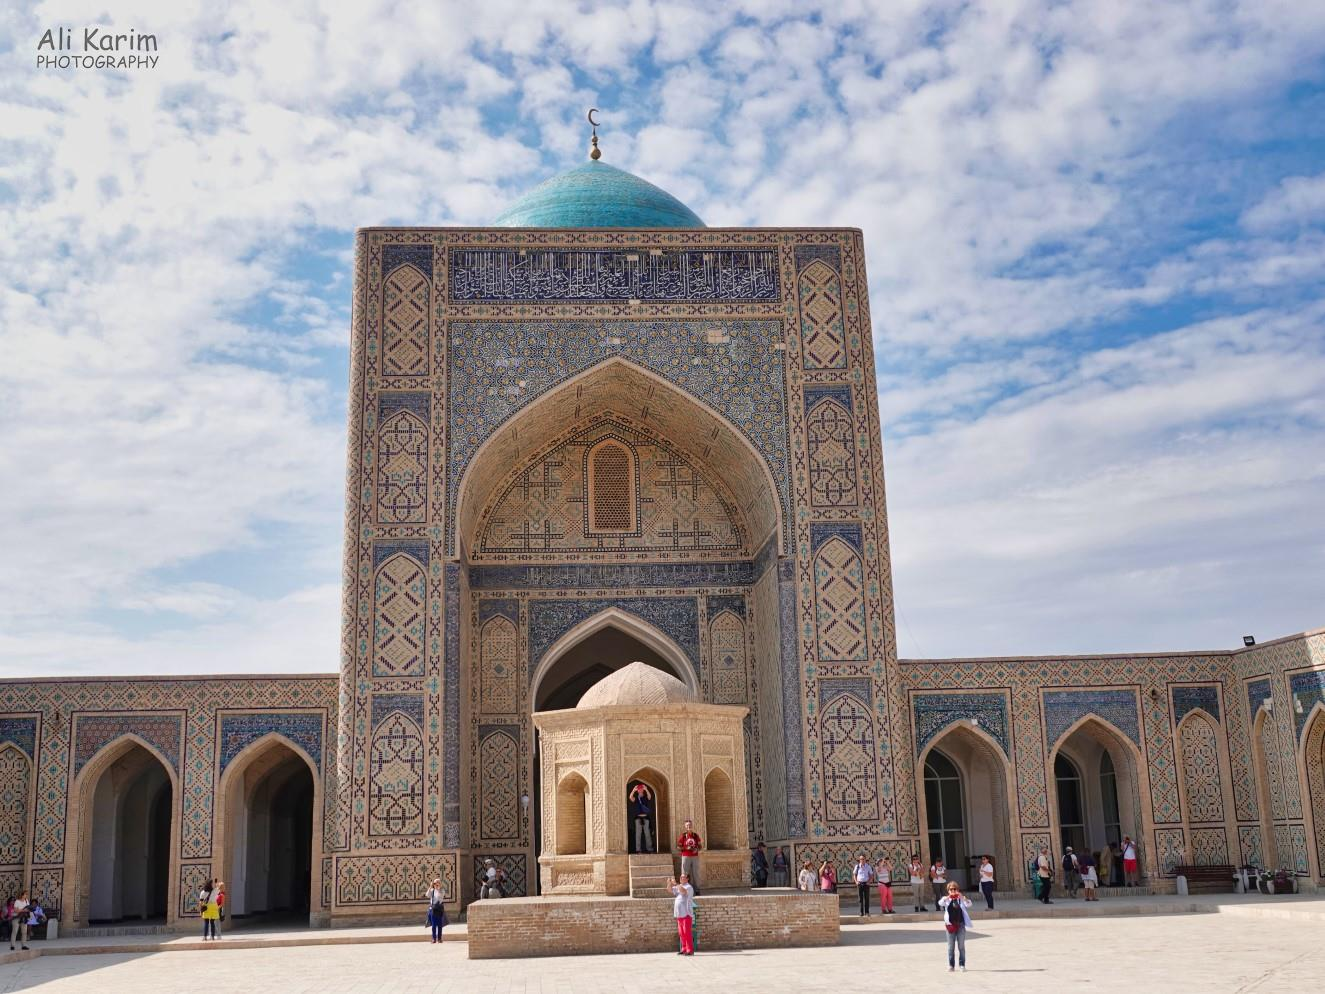 Bukhara, Oct 2019, The mosque was at the far end from the entrance, across a large courtyard